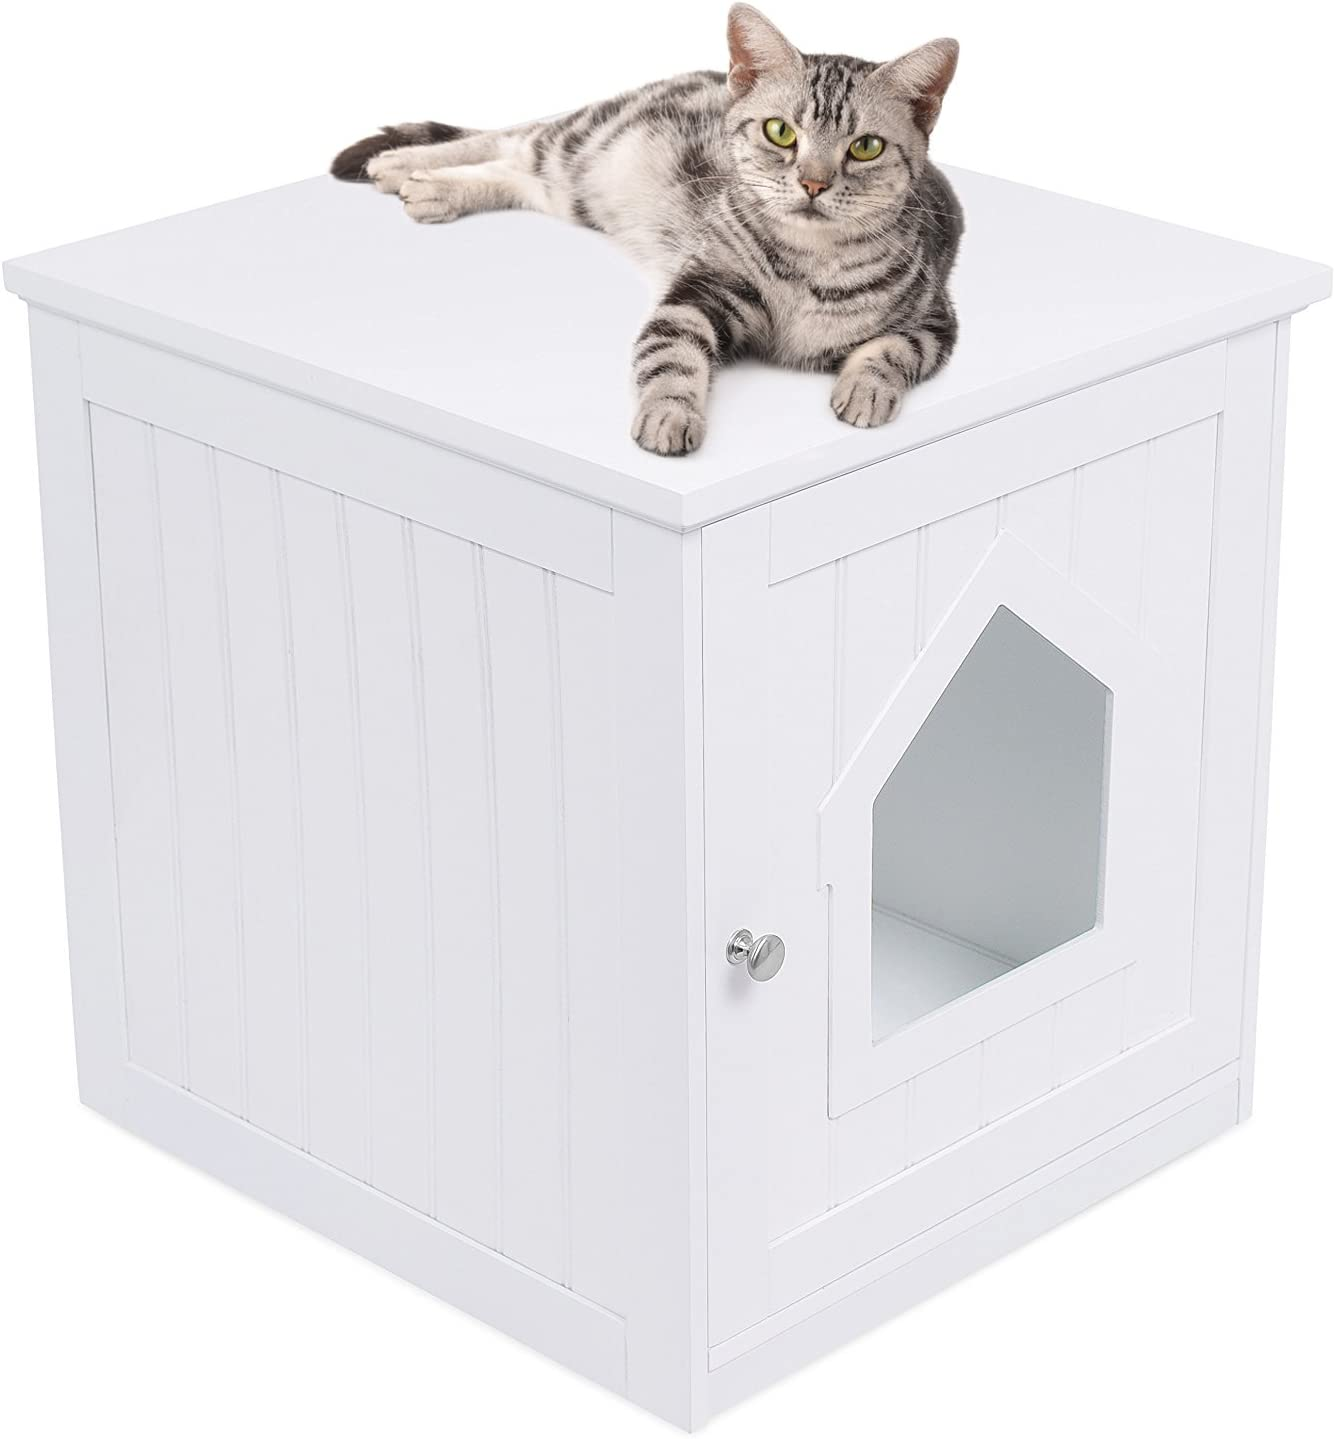 Amazon Com Birdrock Home Decorative Cat House Side Table Cat Home Nightstand Indoor Pet Crate Litter Box Enclosure Hooded Hidden Pet Box Cats Furniture Cabinet Kitty Washroom White Pet Supplies